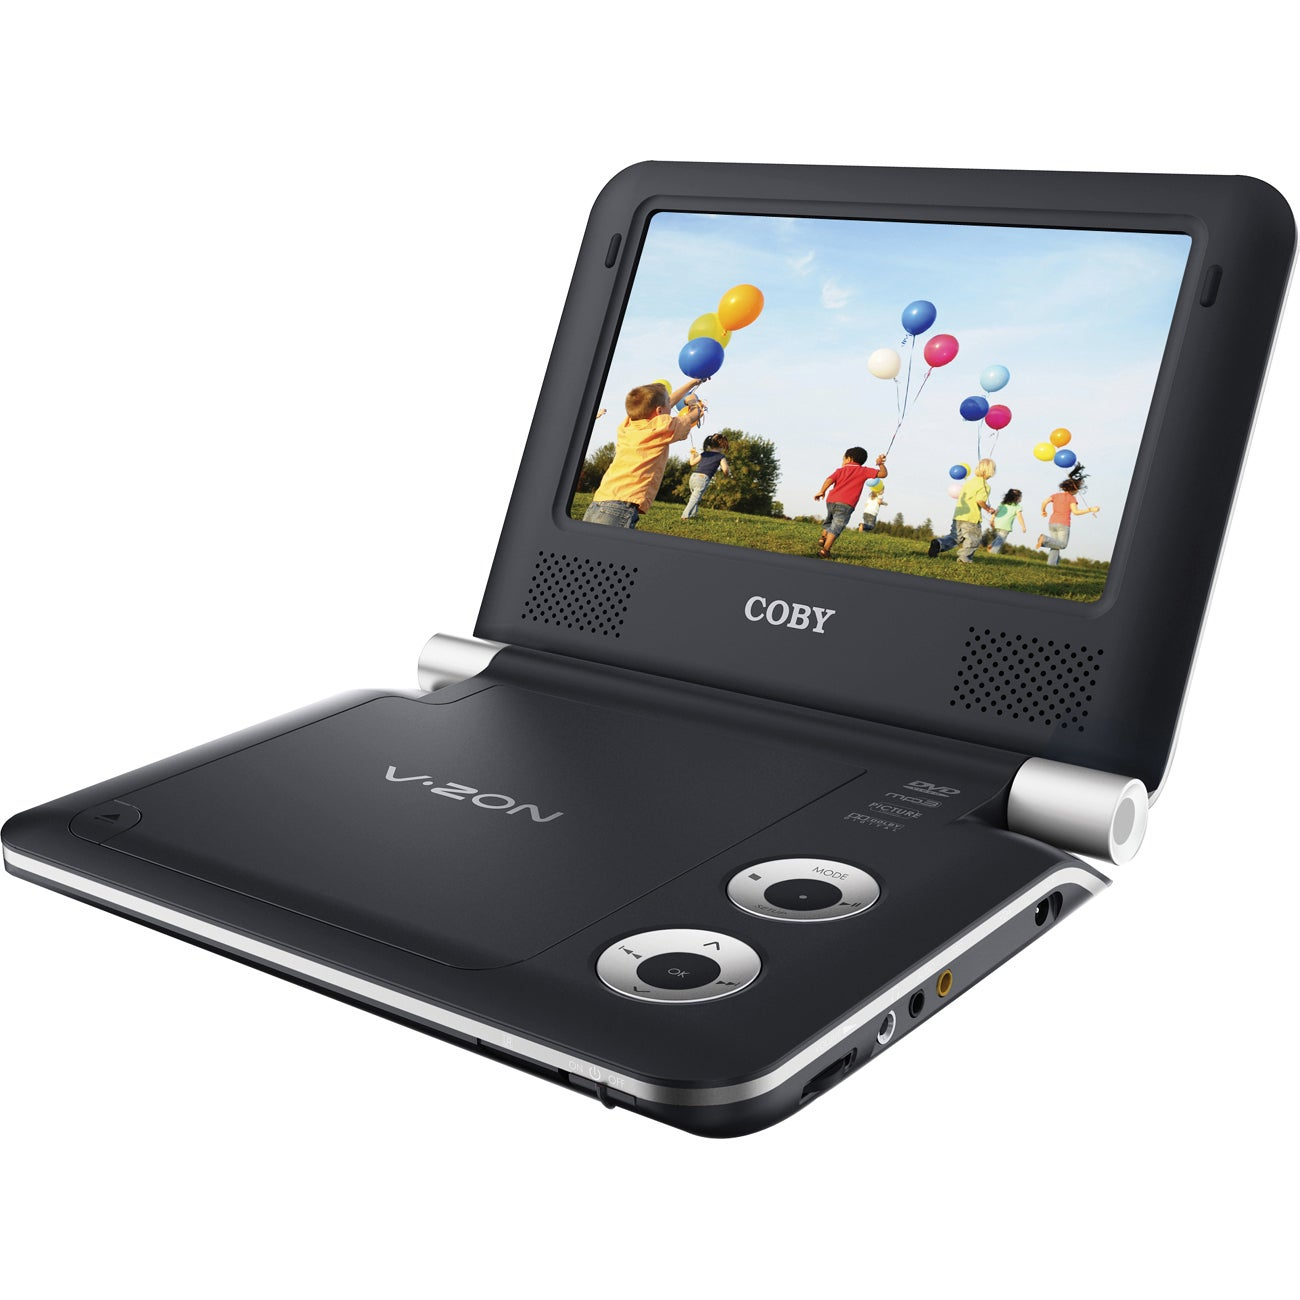 "Coby TFDVD7009 Portable DVD Player - 7"" Display"